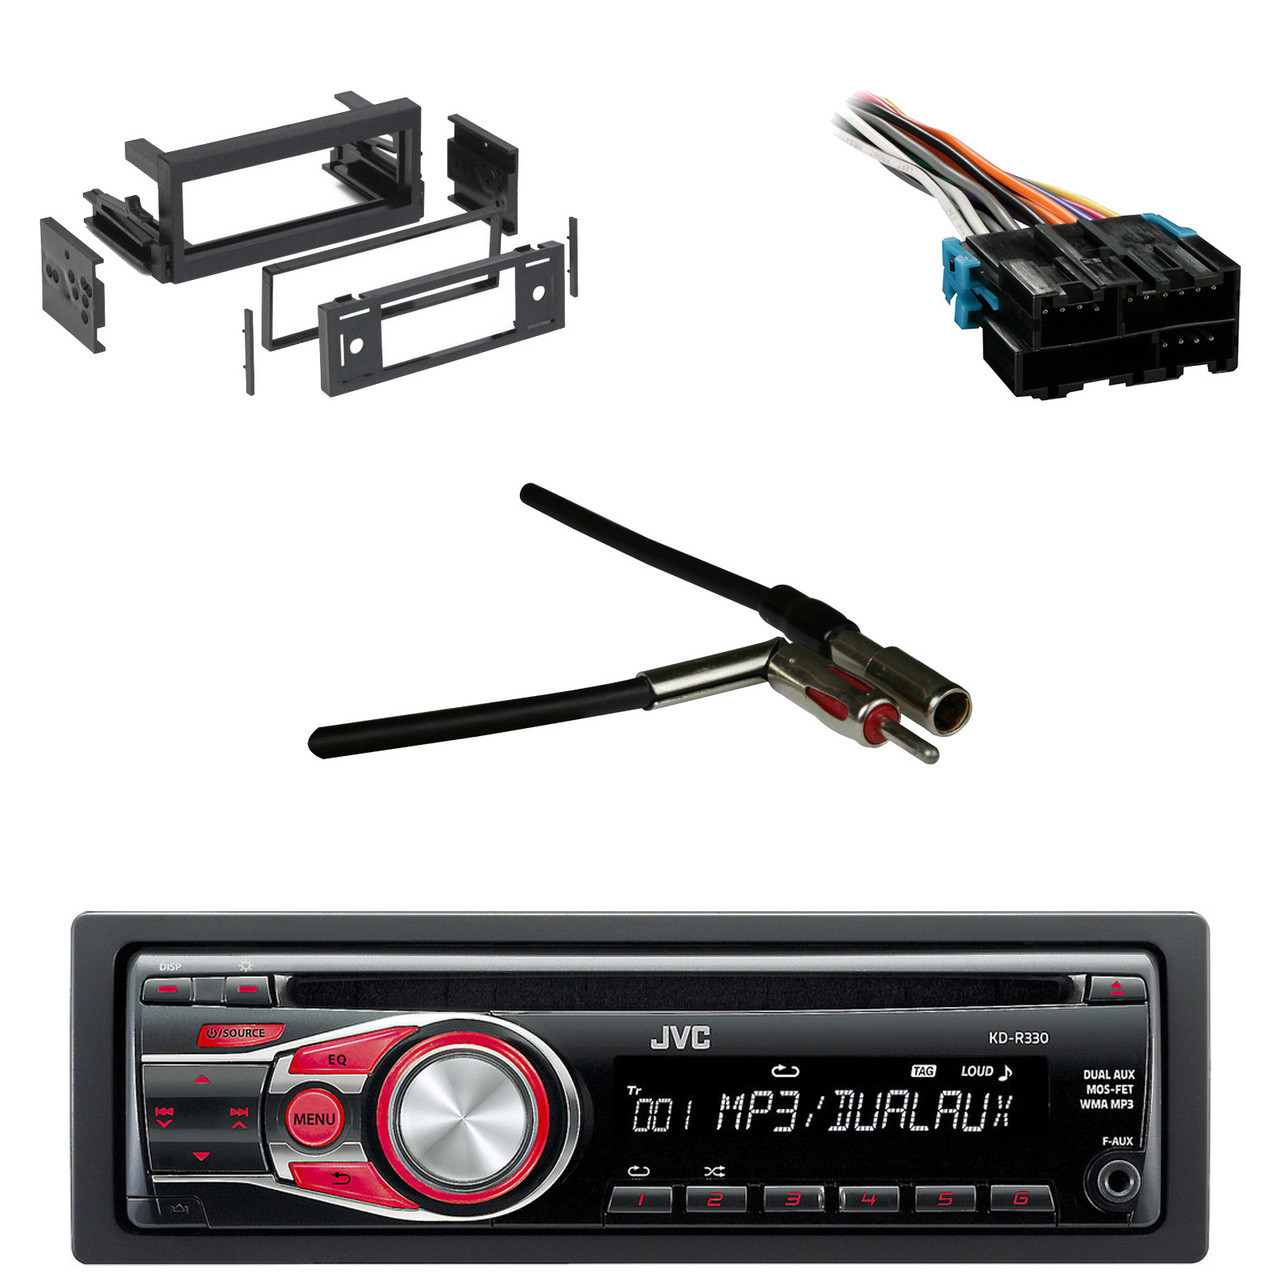 hight resolution of jvc kdr330 cd aux car radio antenn adapter gm wire harness gmjvc kdr330